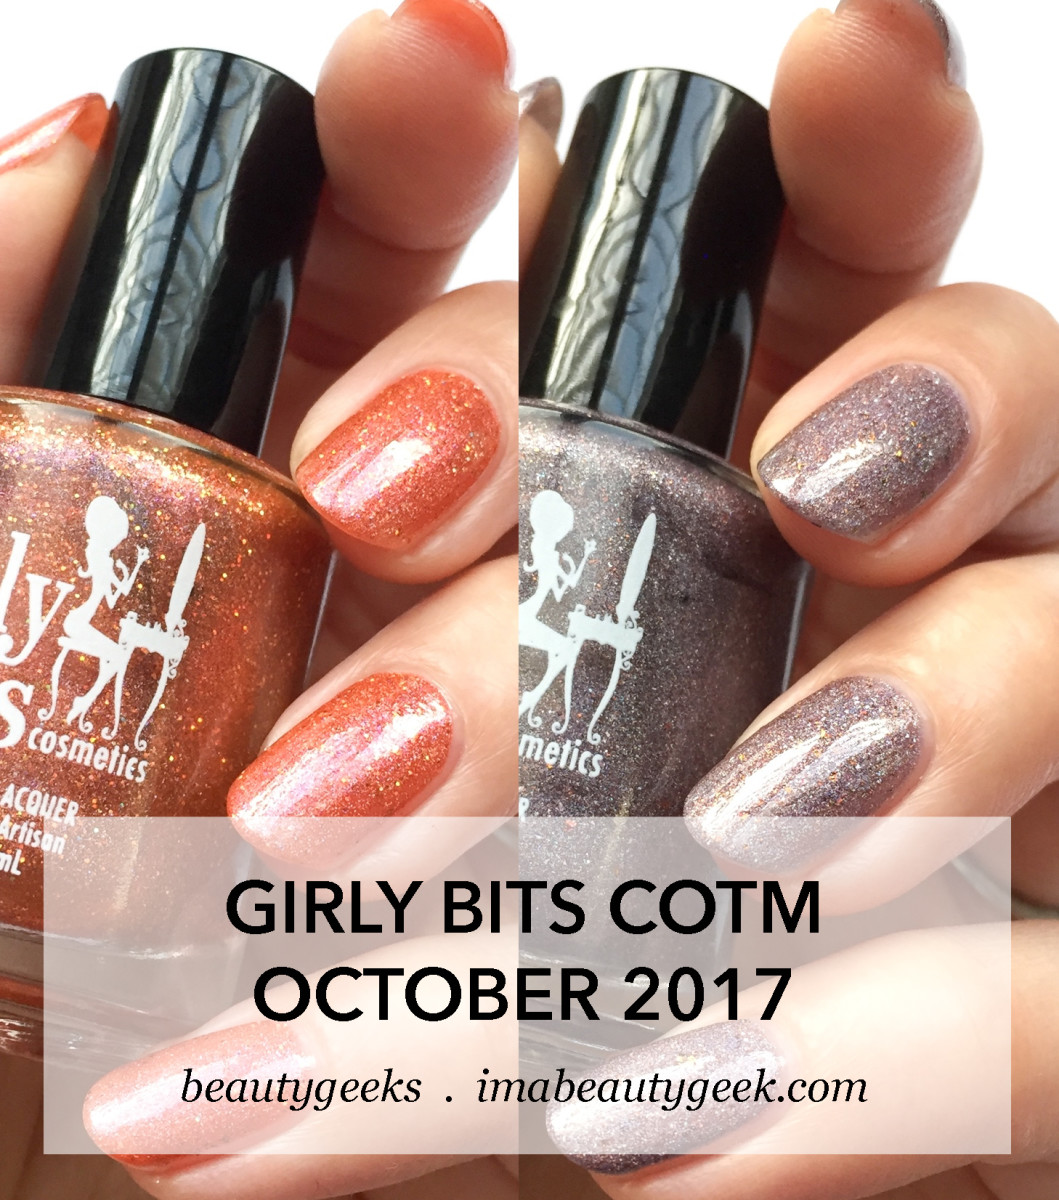 Girly Bits COTM October 2017 swatches-BEAUTYGEEKS